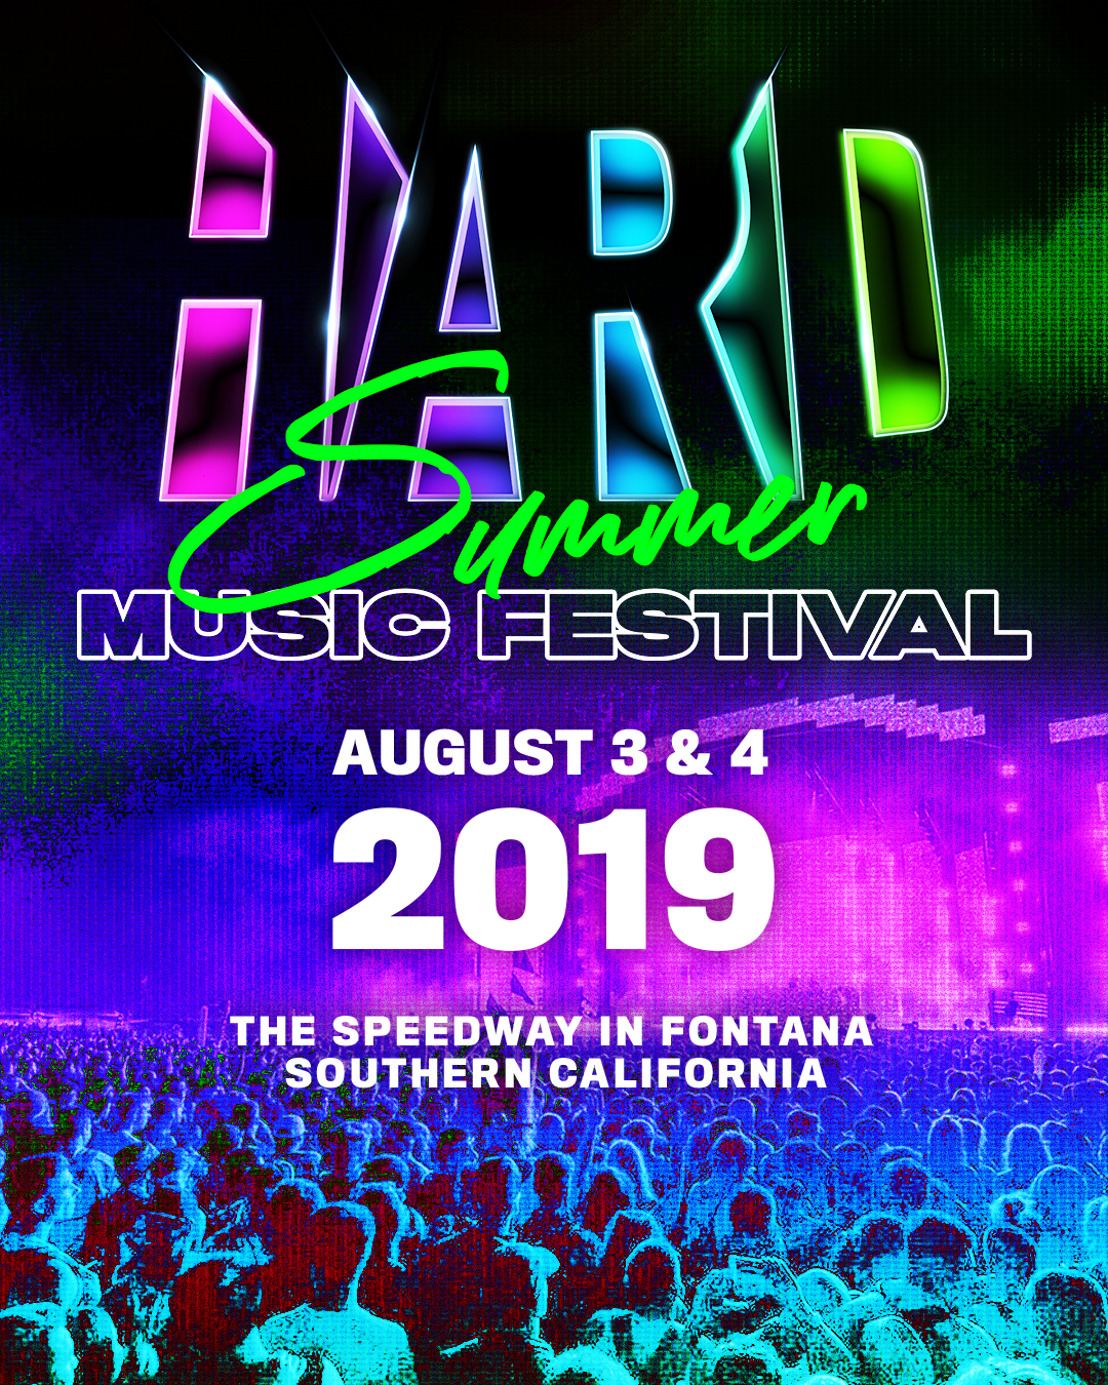 Hard Fest 2019 official